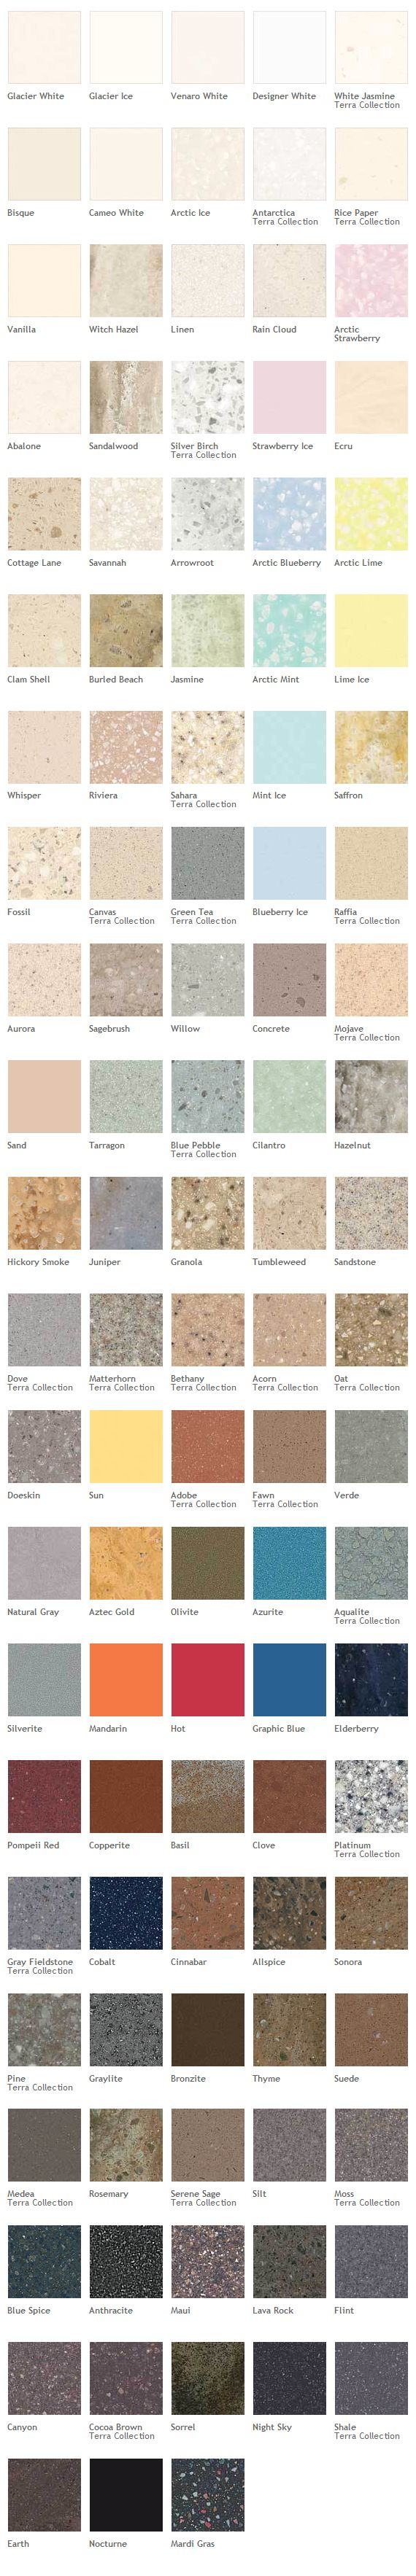 We Picked Medea For Our Countertop I Can 39 T Wait To See It